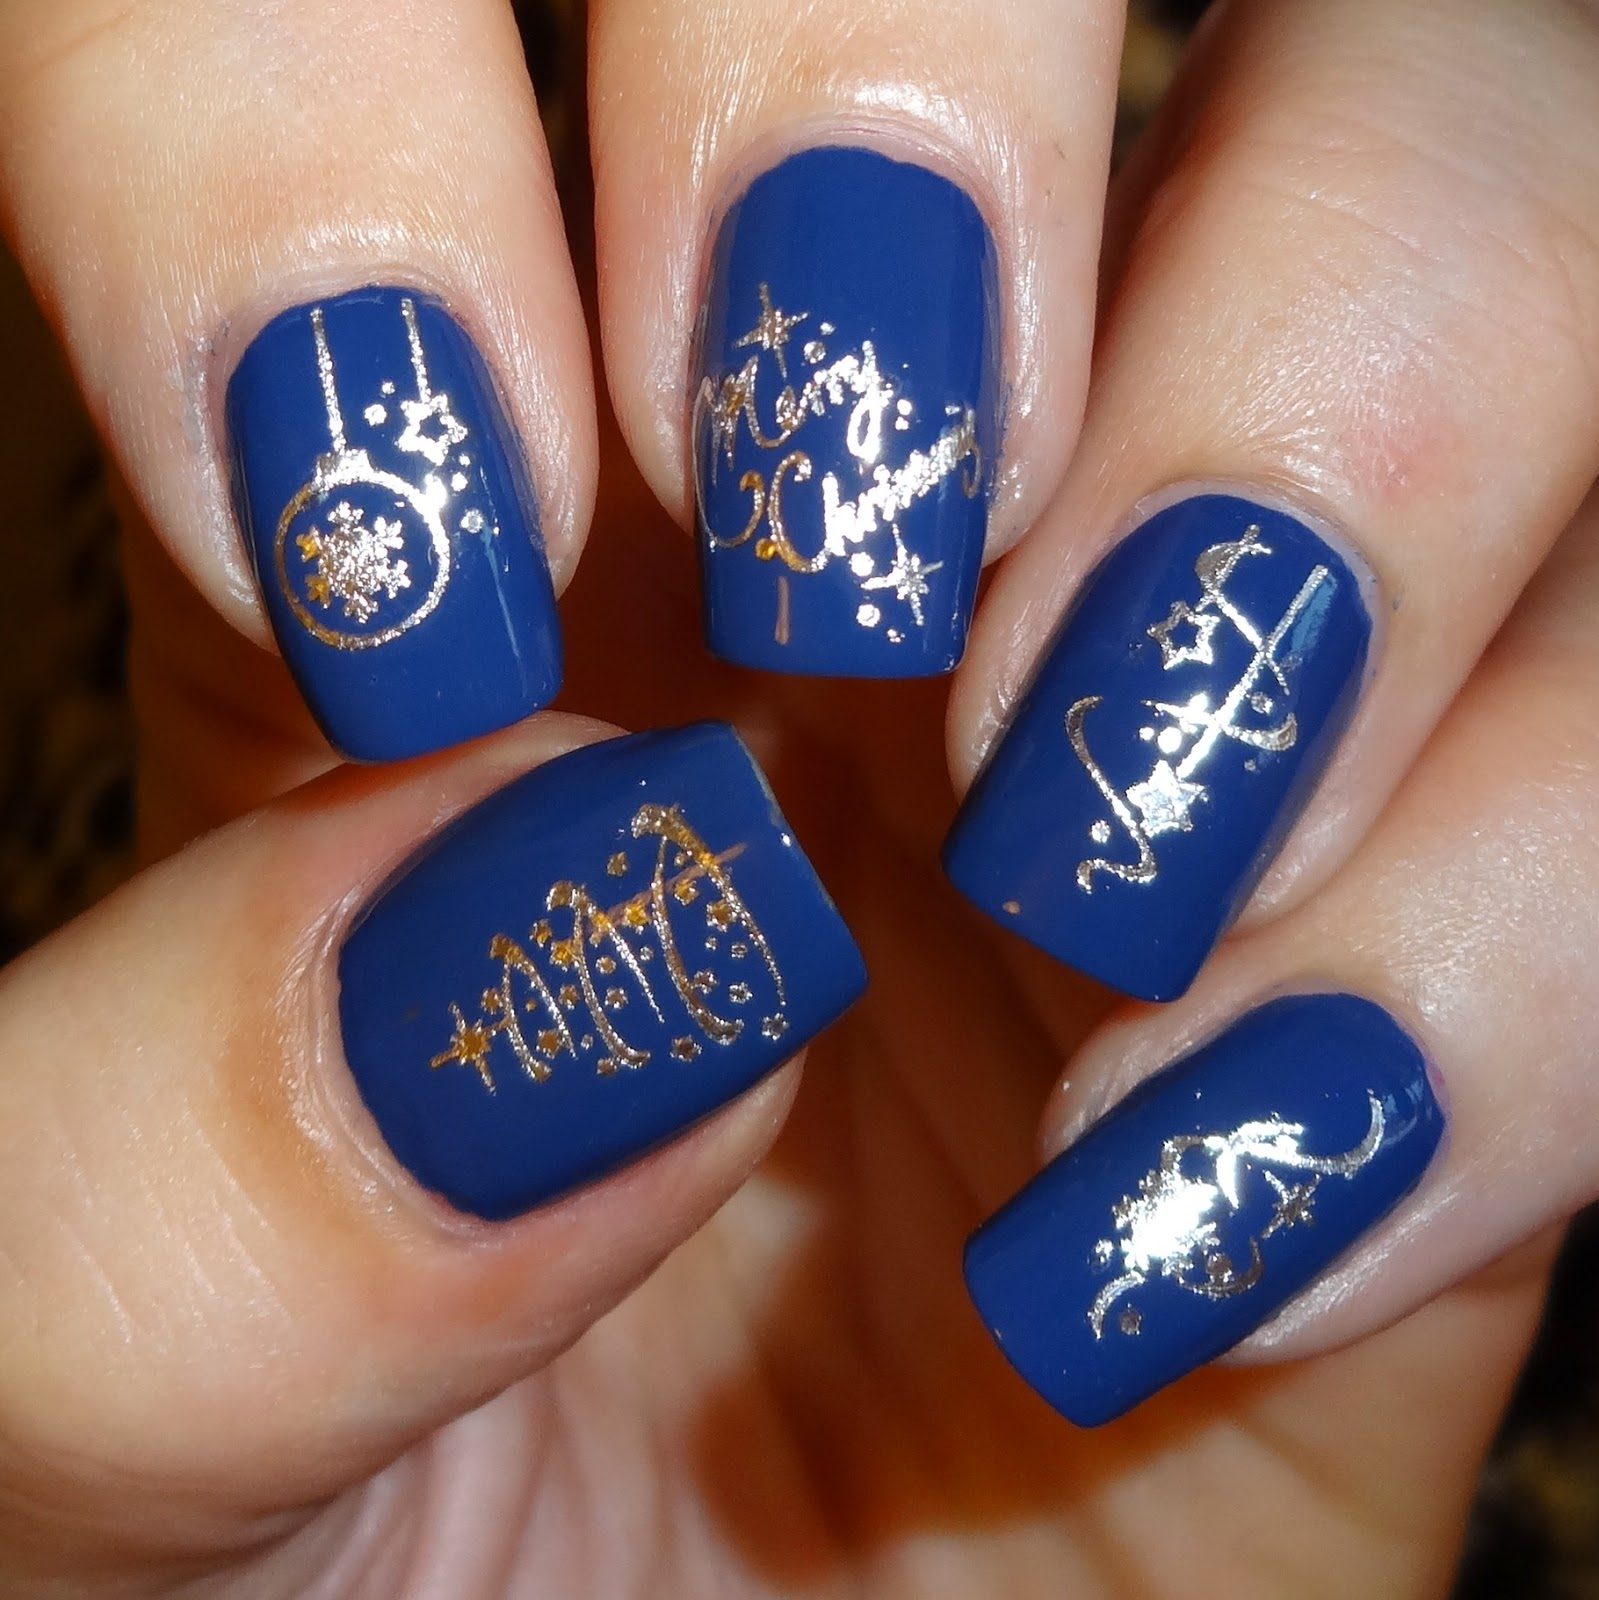 navy blue and silver nail designs nail art gallery navy blue nail art photos - Blue Christmas Nails